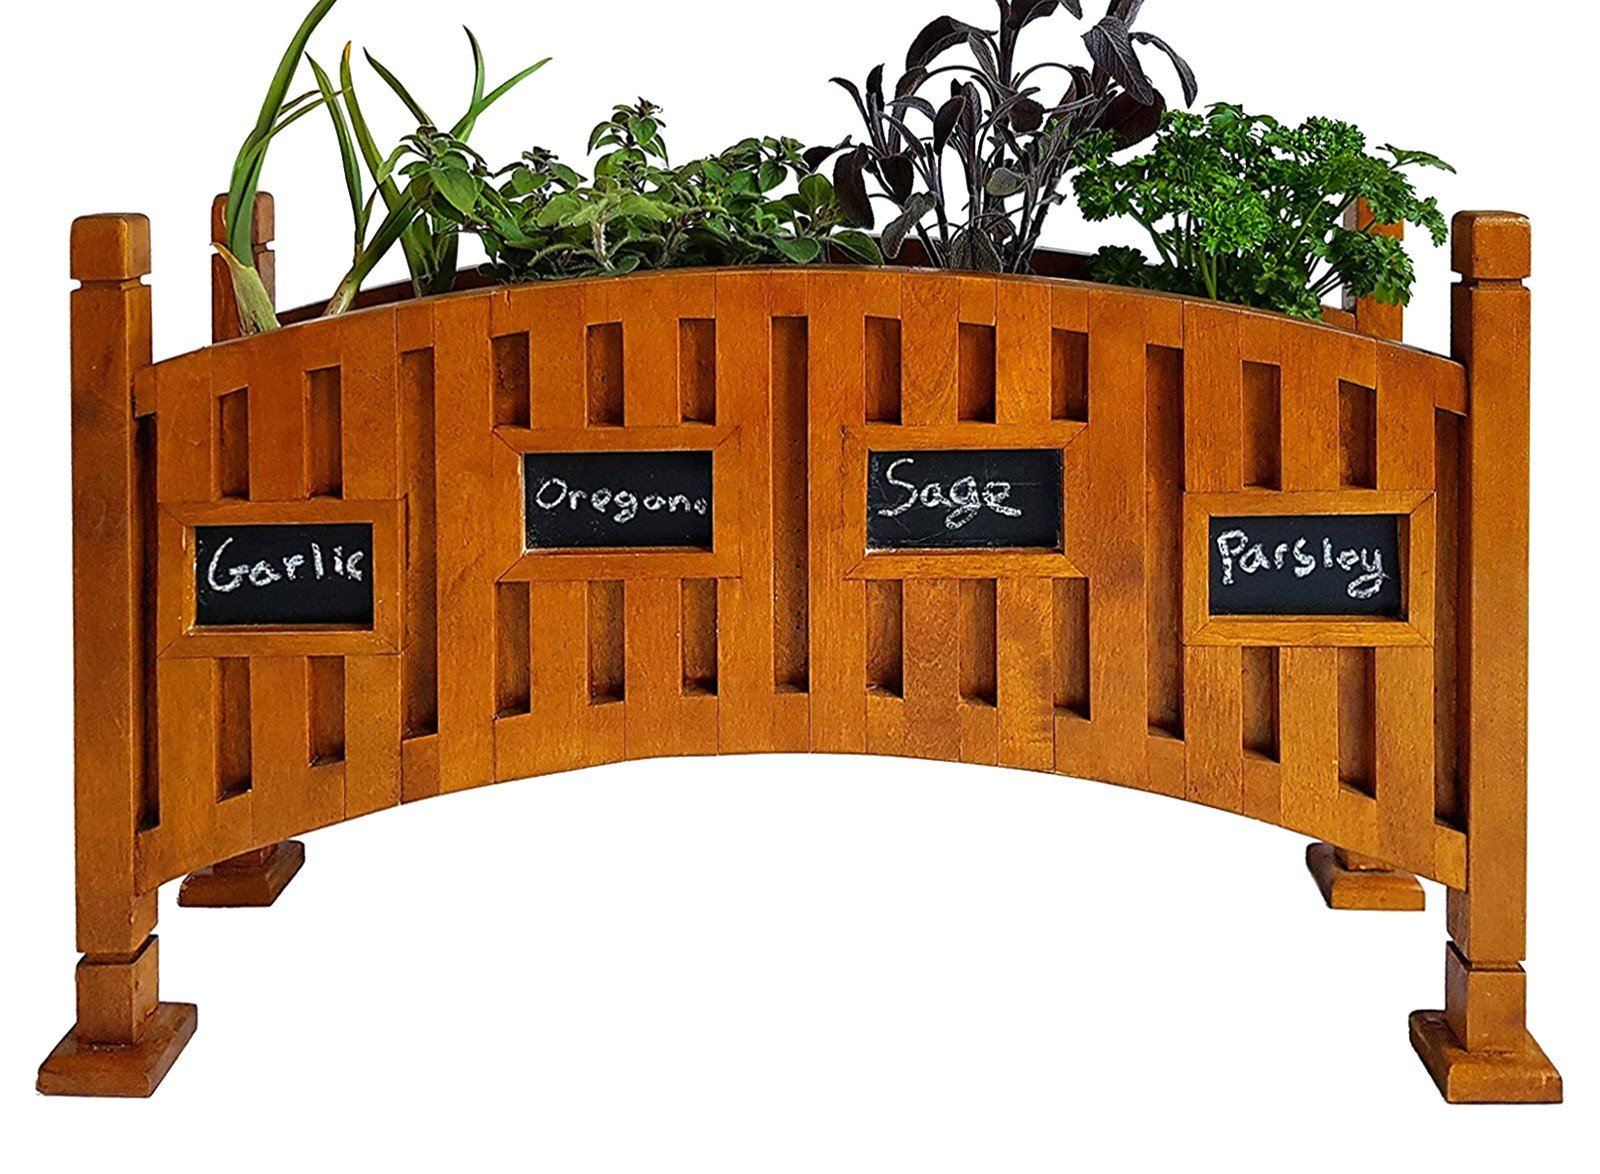 Solid Birch Wood Kitchen Herb Garden Indoor Planter Box with Chalkboard - Perfect for Windowsill by NaturaGarden